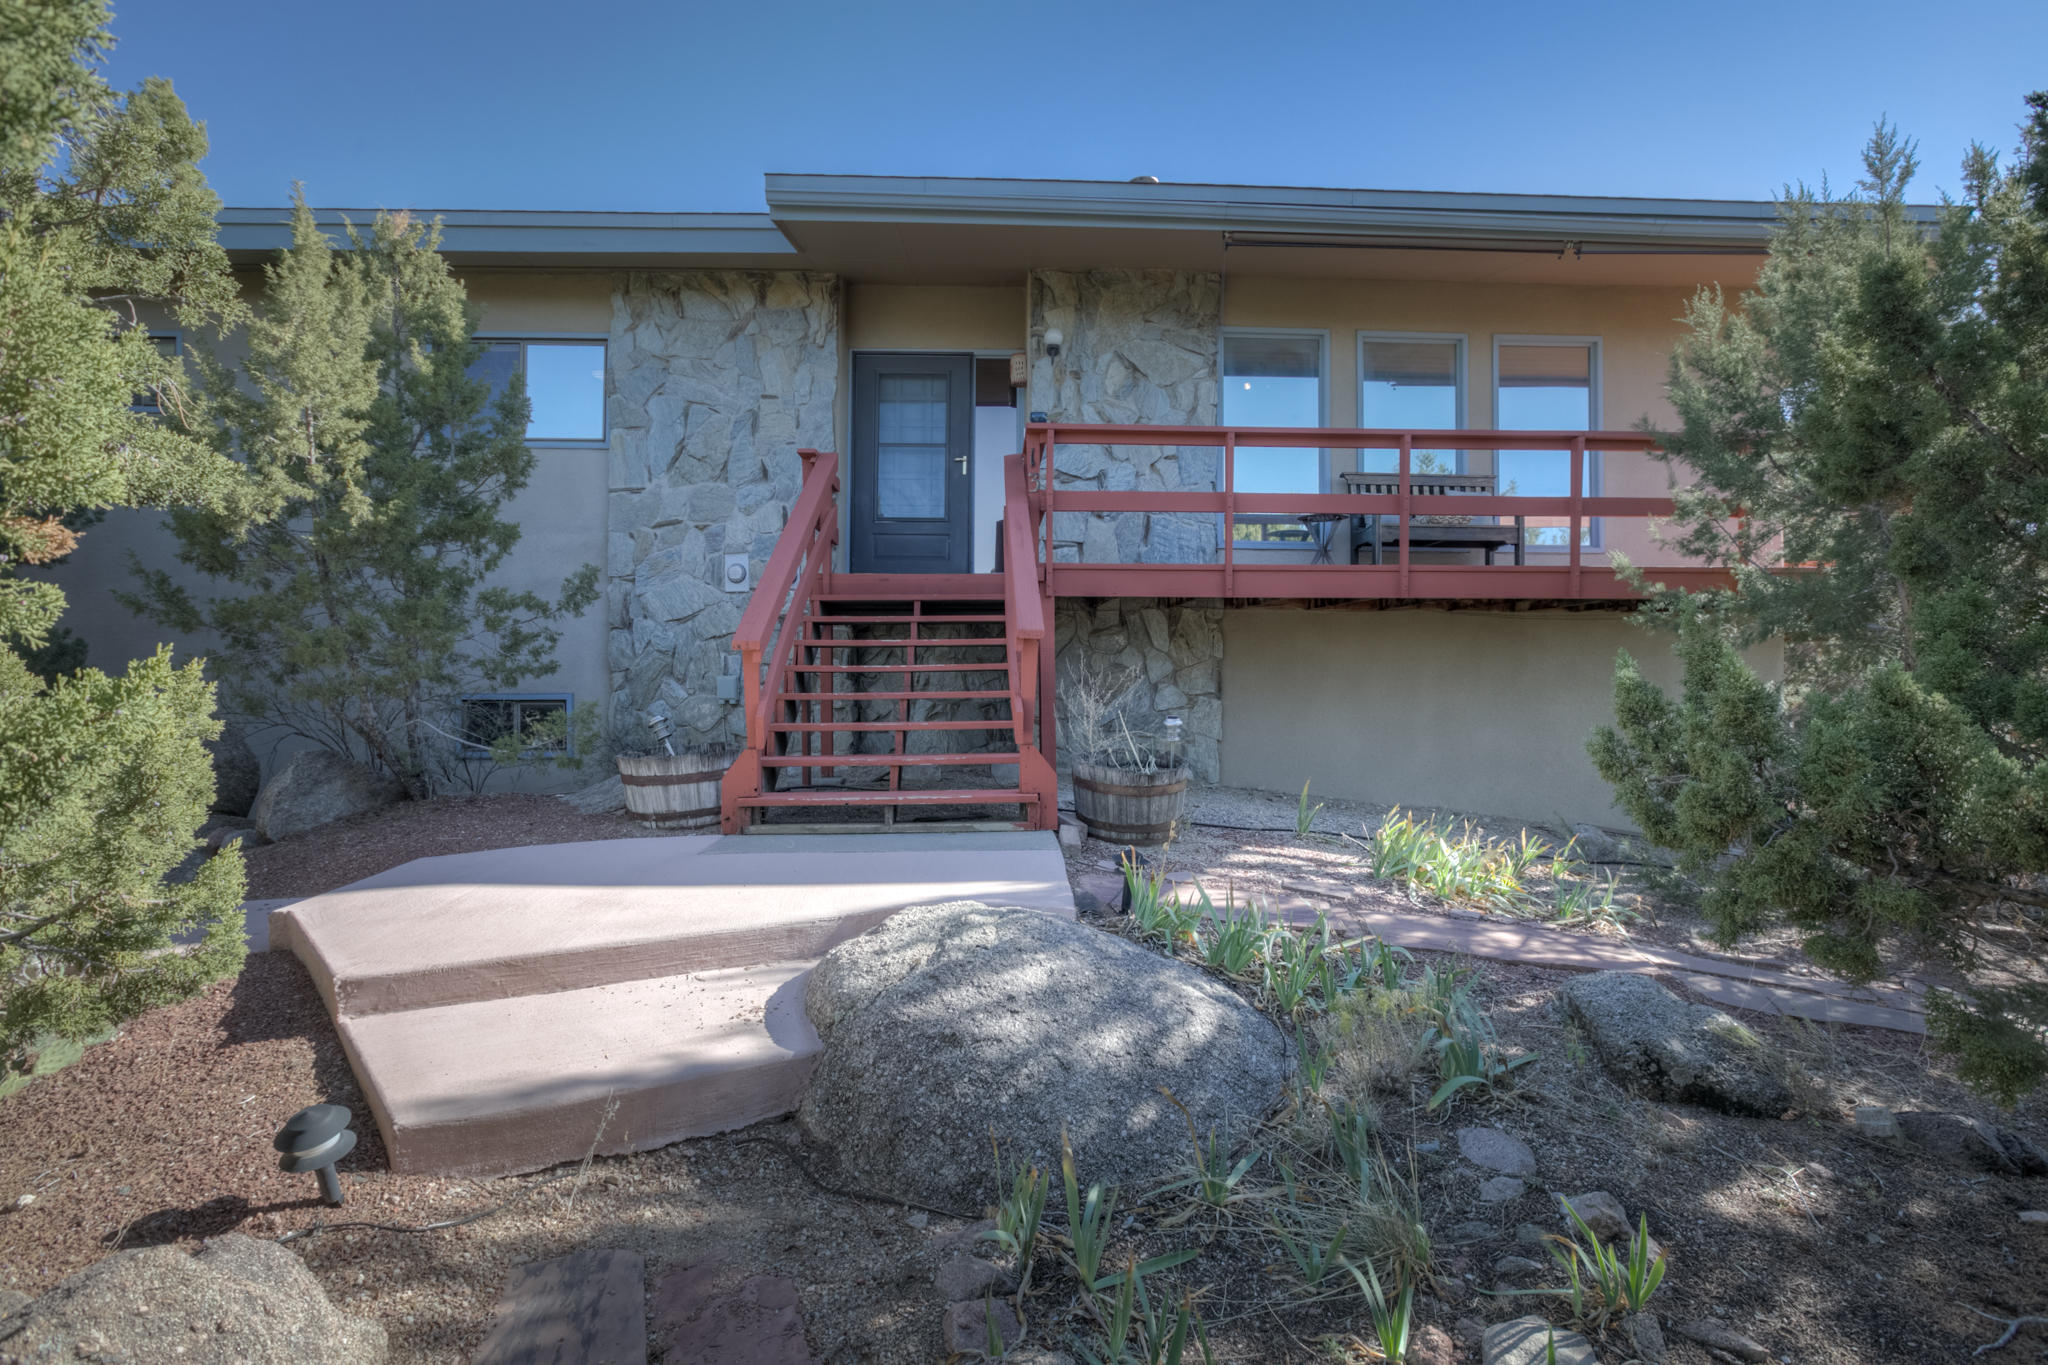 Check out this house w/ million dollar city &  mountain views on a large (.8 acre) usable lot. lots of privacy; sit on the deck or in the hot tub day or night & enjoy city and mountain views and watch the tram go up. There is a large wrap around deck w/ a gazebo w/ a fireplace, drip irrigation for plants & trees; refrigerate air, tankless water heater w/ endless hot water; & updated septic system. 3 car garage attached and 2 car detached garage. Very large open flexible floorpan living/dining/kitchen w/ real hardwood floors. Master bedroom has walk in closet & remodeled full master bathroom. Large game/media room with TV in basement with 3/4 bathroom and extra large room w/ closet that can be used as office or 4th BR. New roof in 2018 with 3 years left on transferable warrantee.